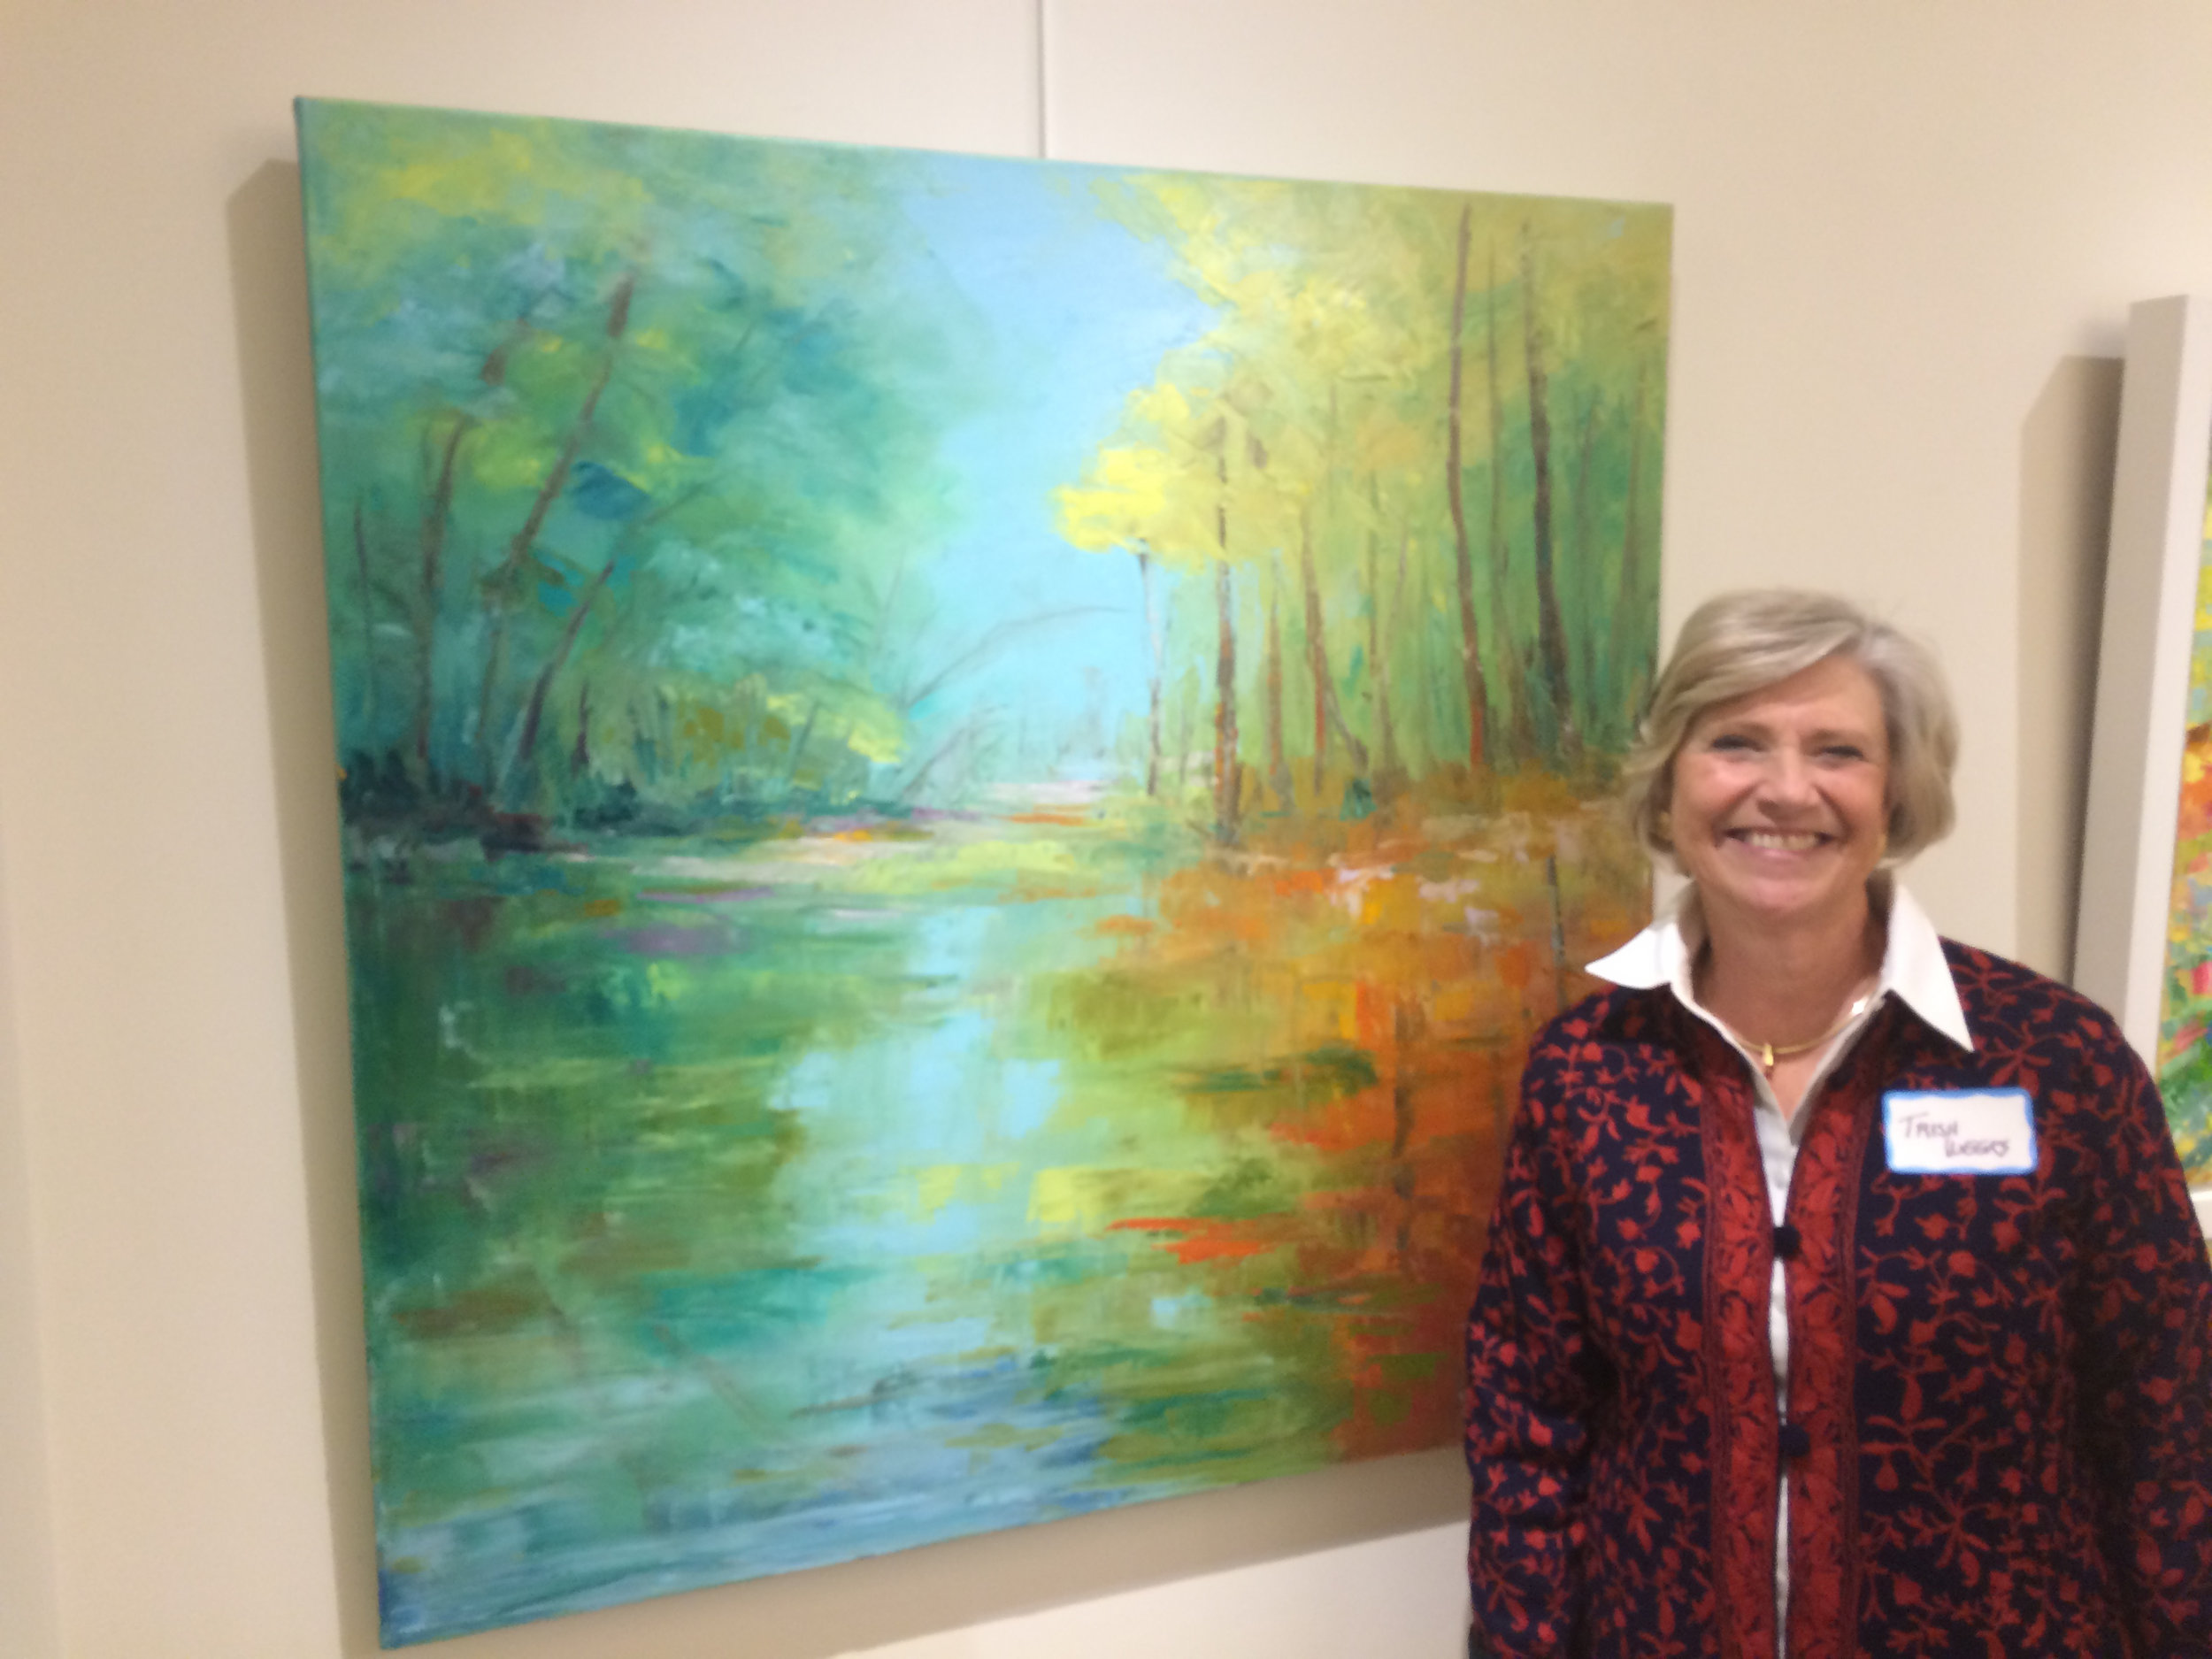 Cincinnati artist Trish Weeks standing in front of her abstract painting at the YWCA